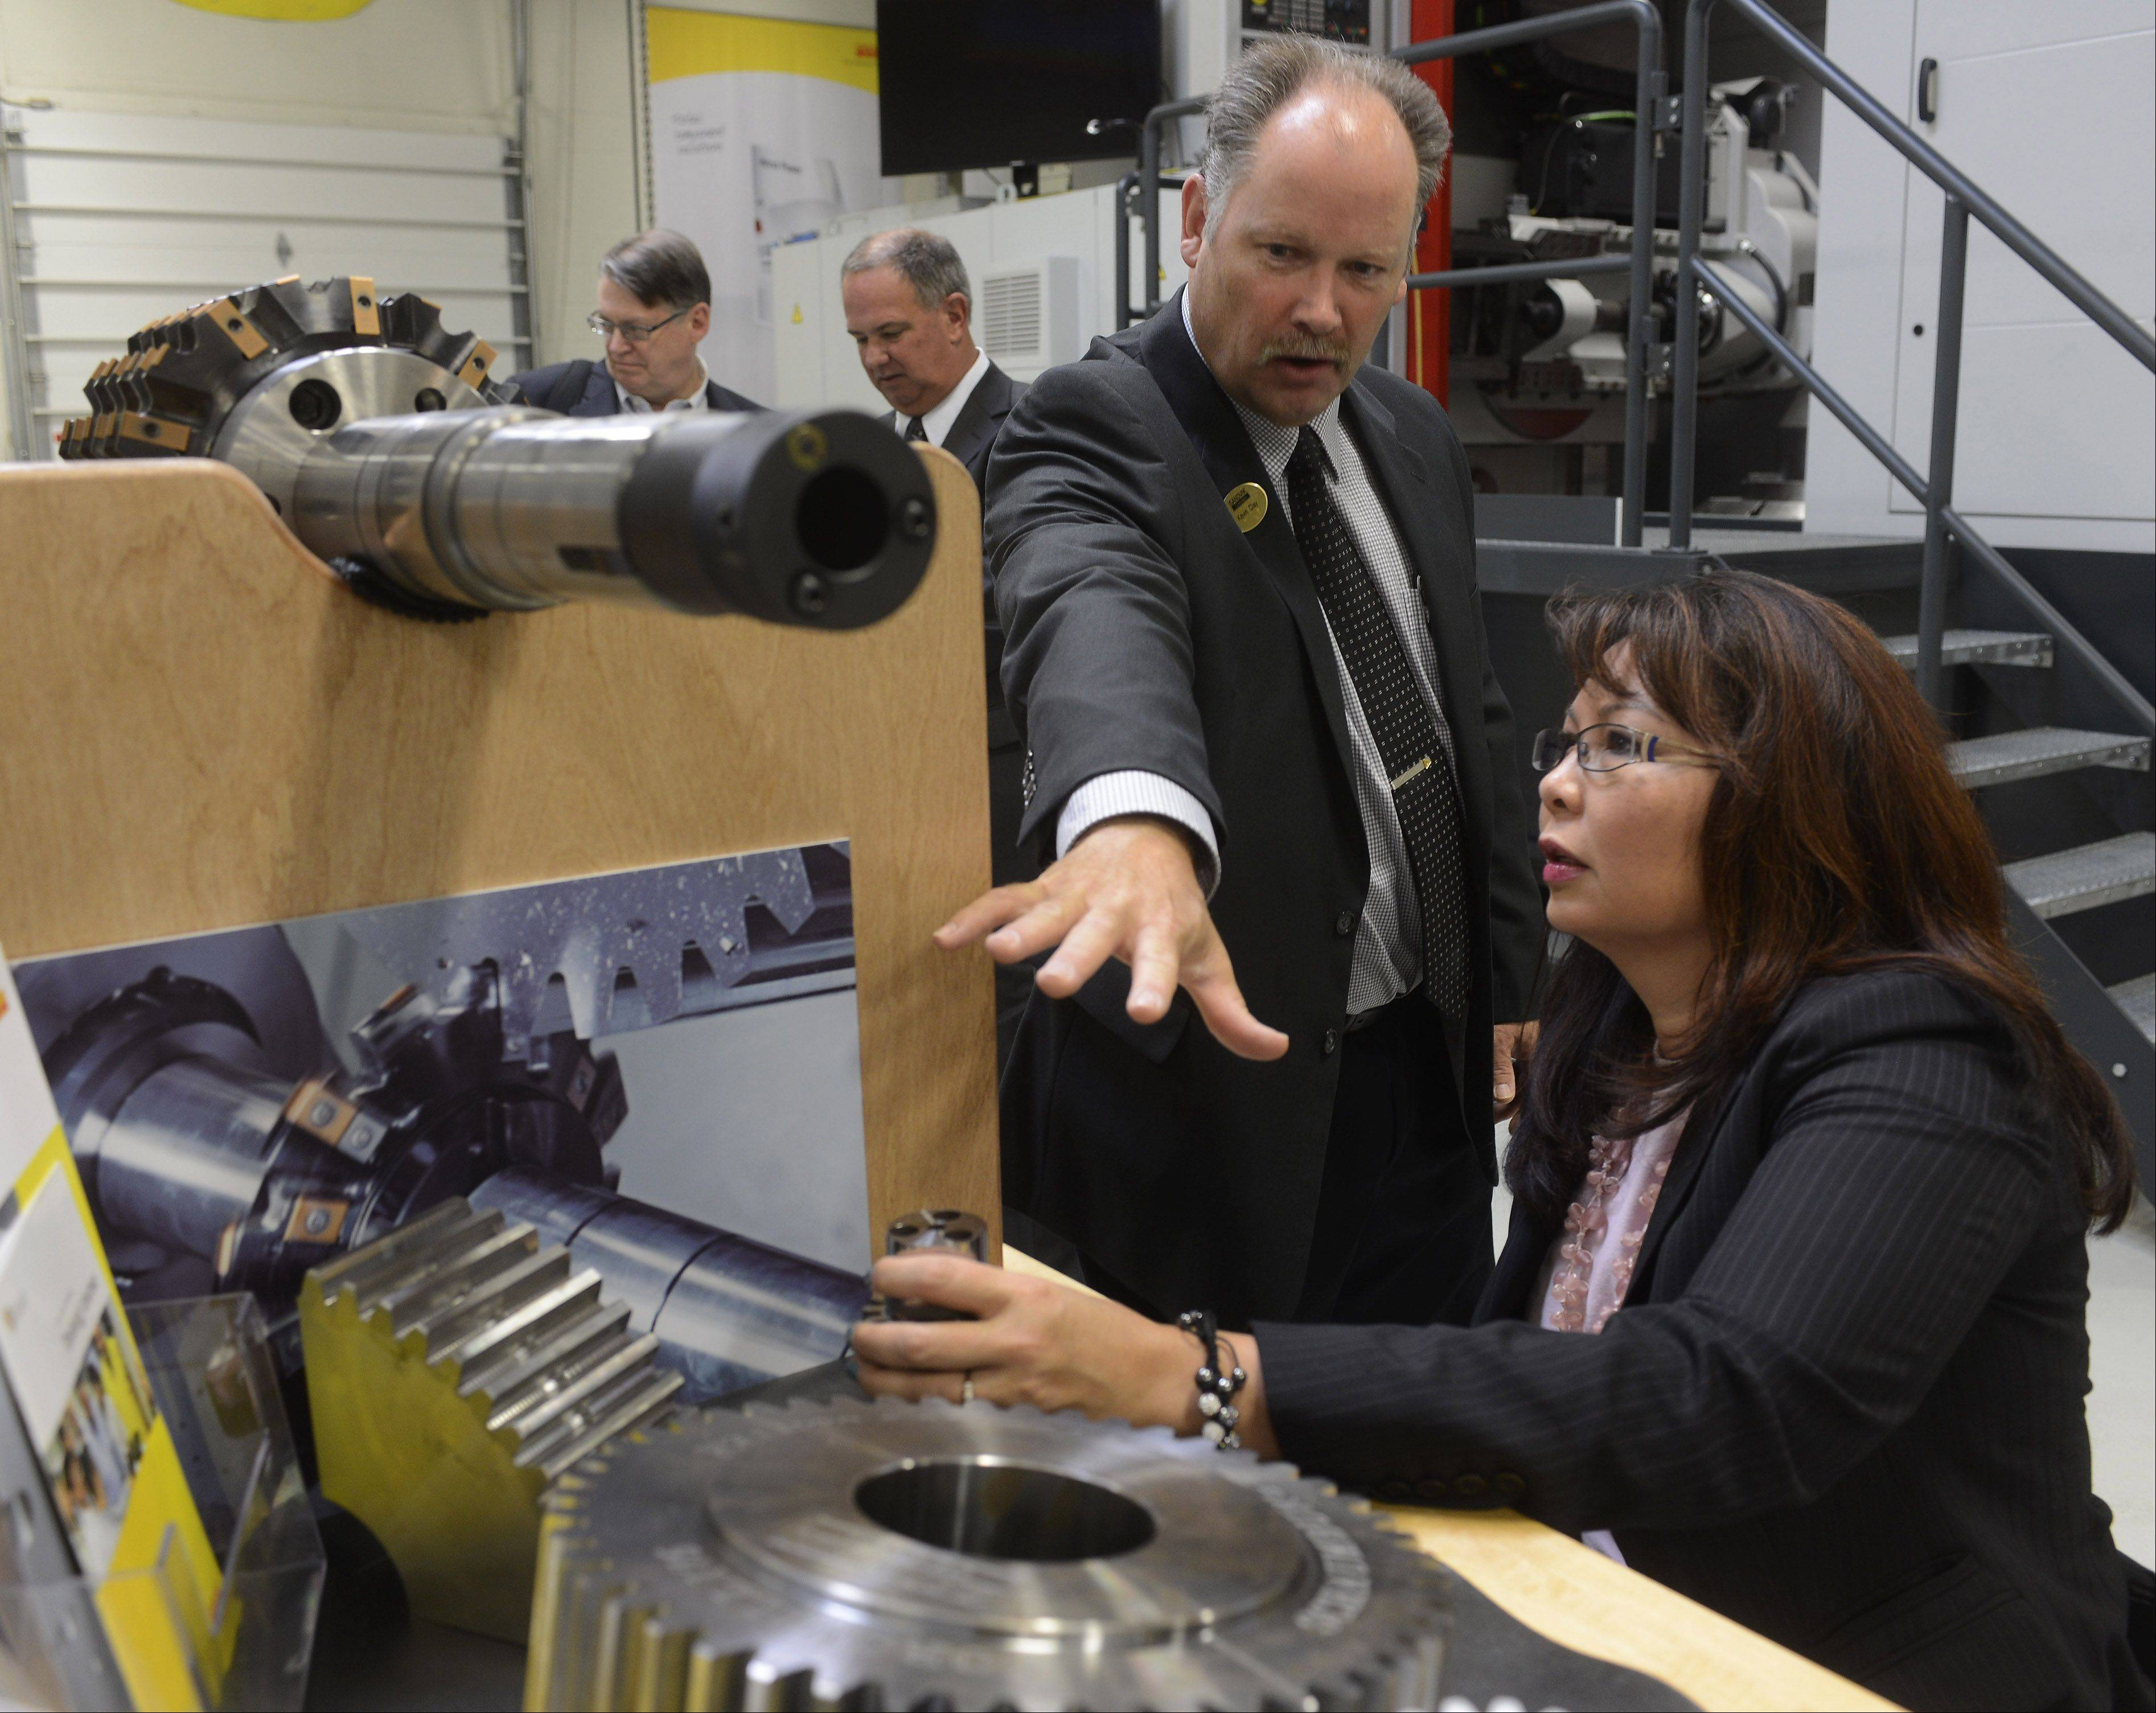 Kevin Clay, productivity center and training manager of Sandvik Coromant Co. in Schaumburg, shows a gear-cutting tool and a gear to U.S. Rep. Tammy Duckworth, a Hoffman Estates Democrat, following a discussion on manufacturing and its importance to the suburban region.